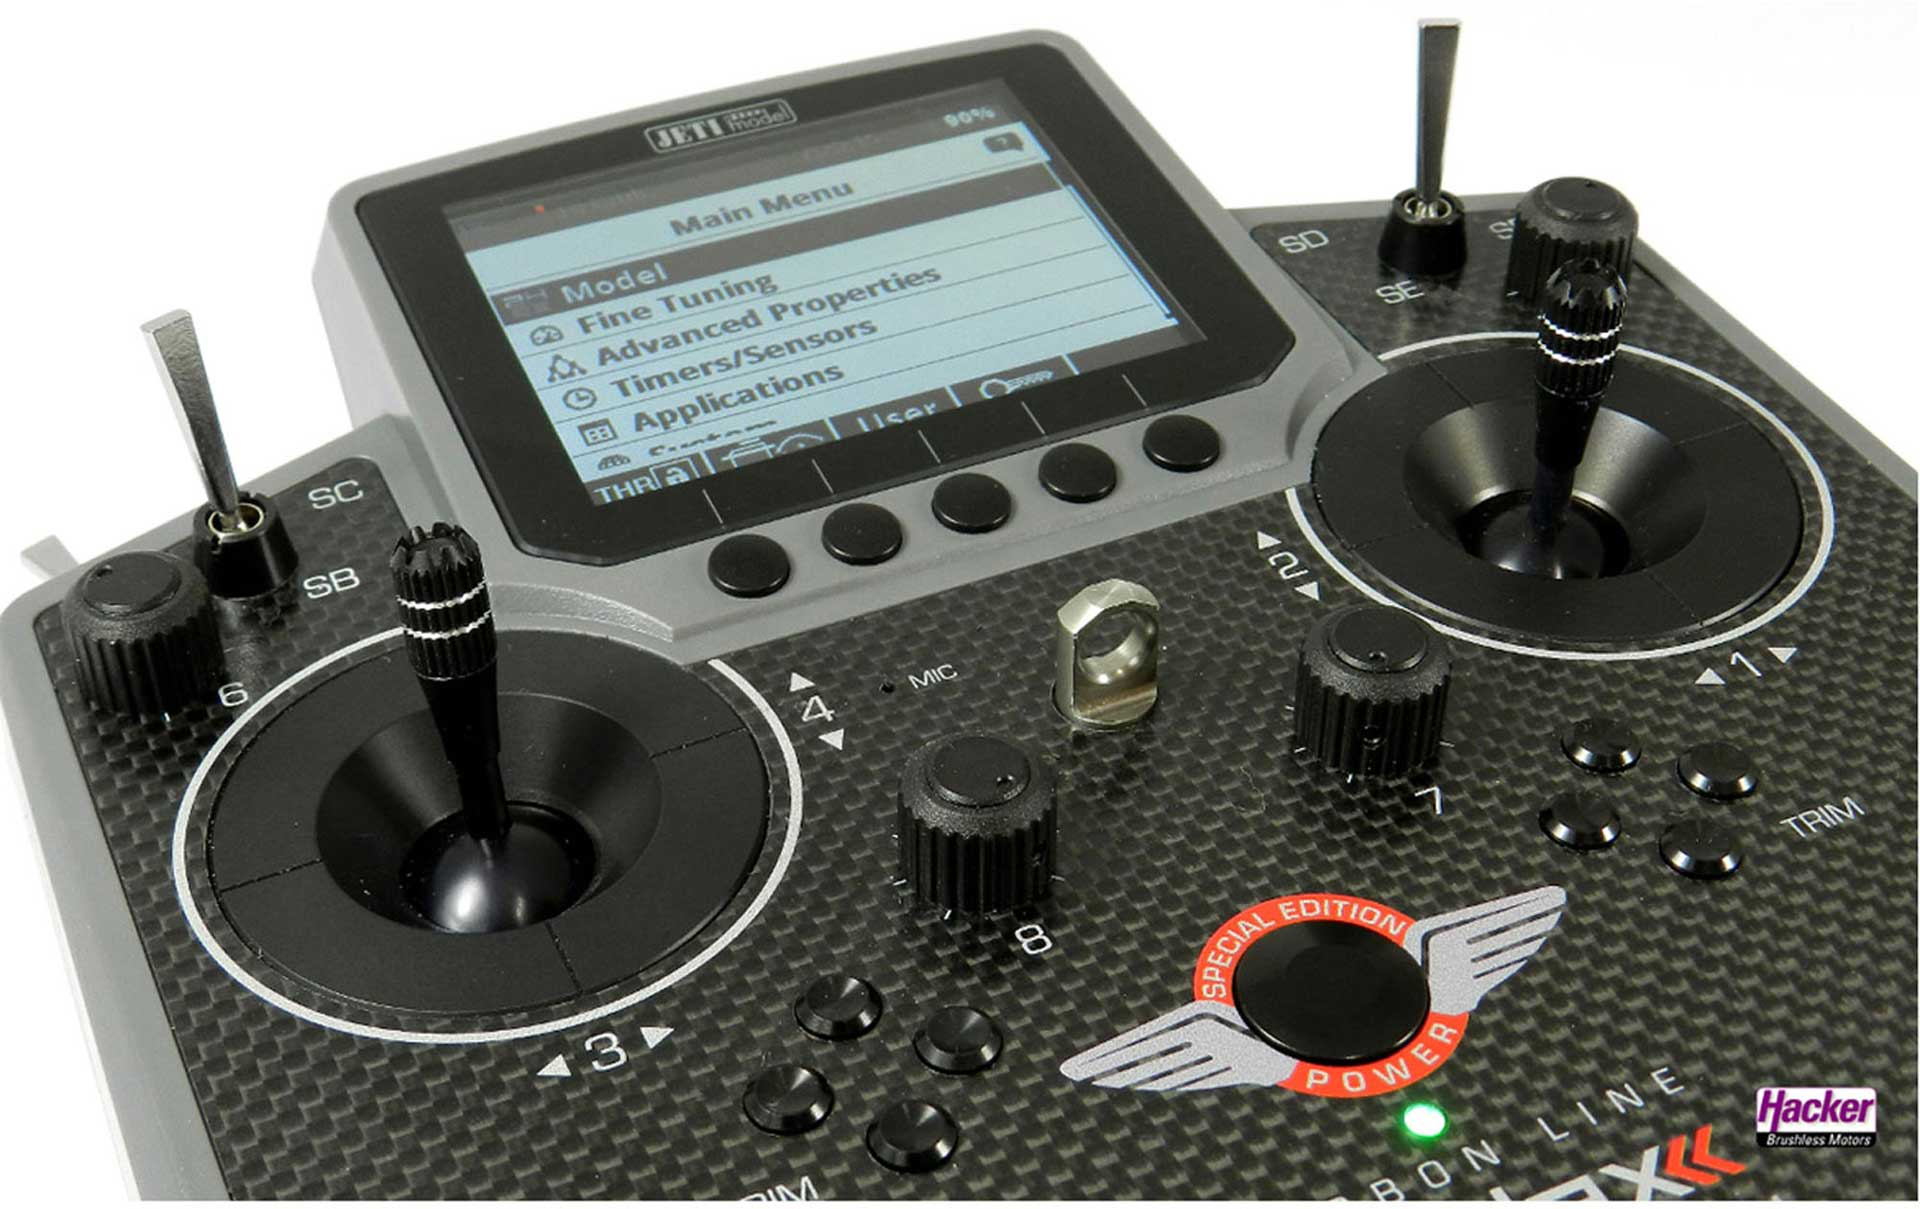 JETI DS-12 SPECIAL EDITION CARBON GRAY MULTIMODE